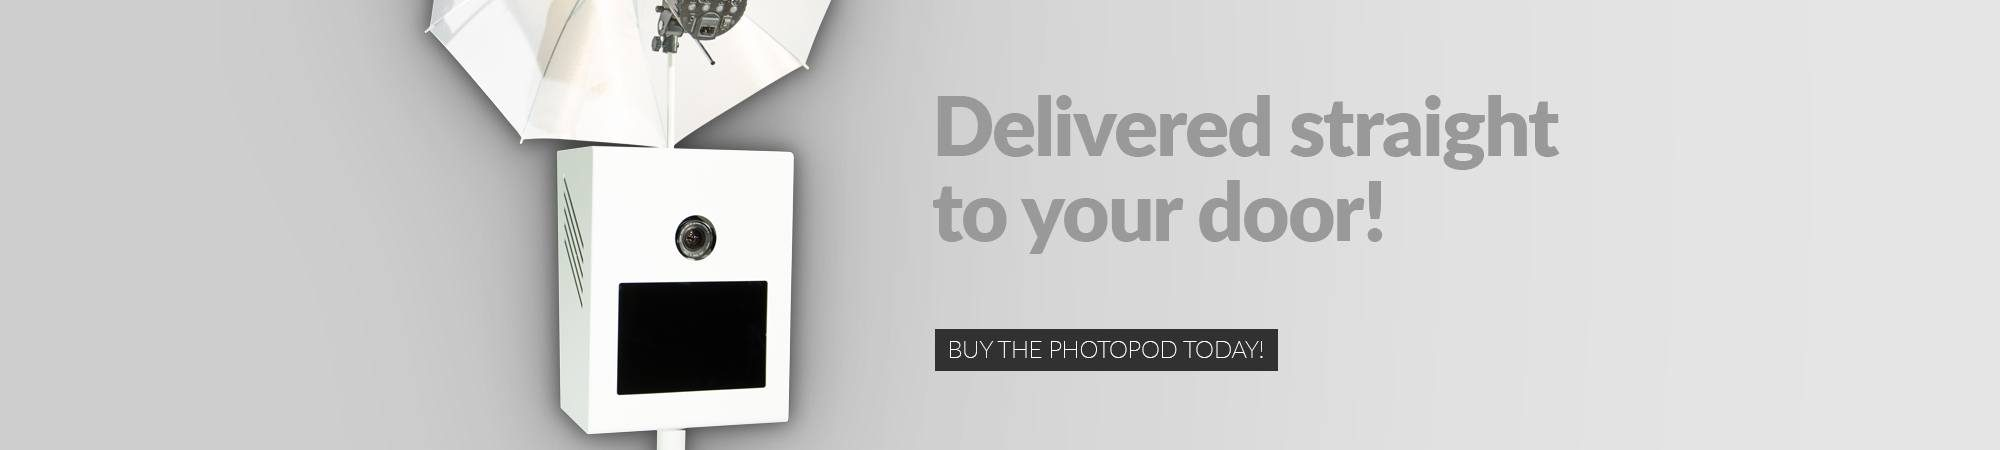 shipping policy banner image for The Photopod